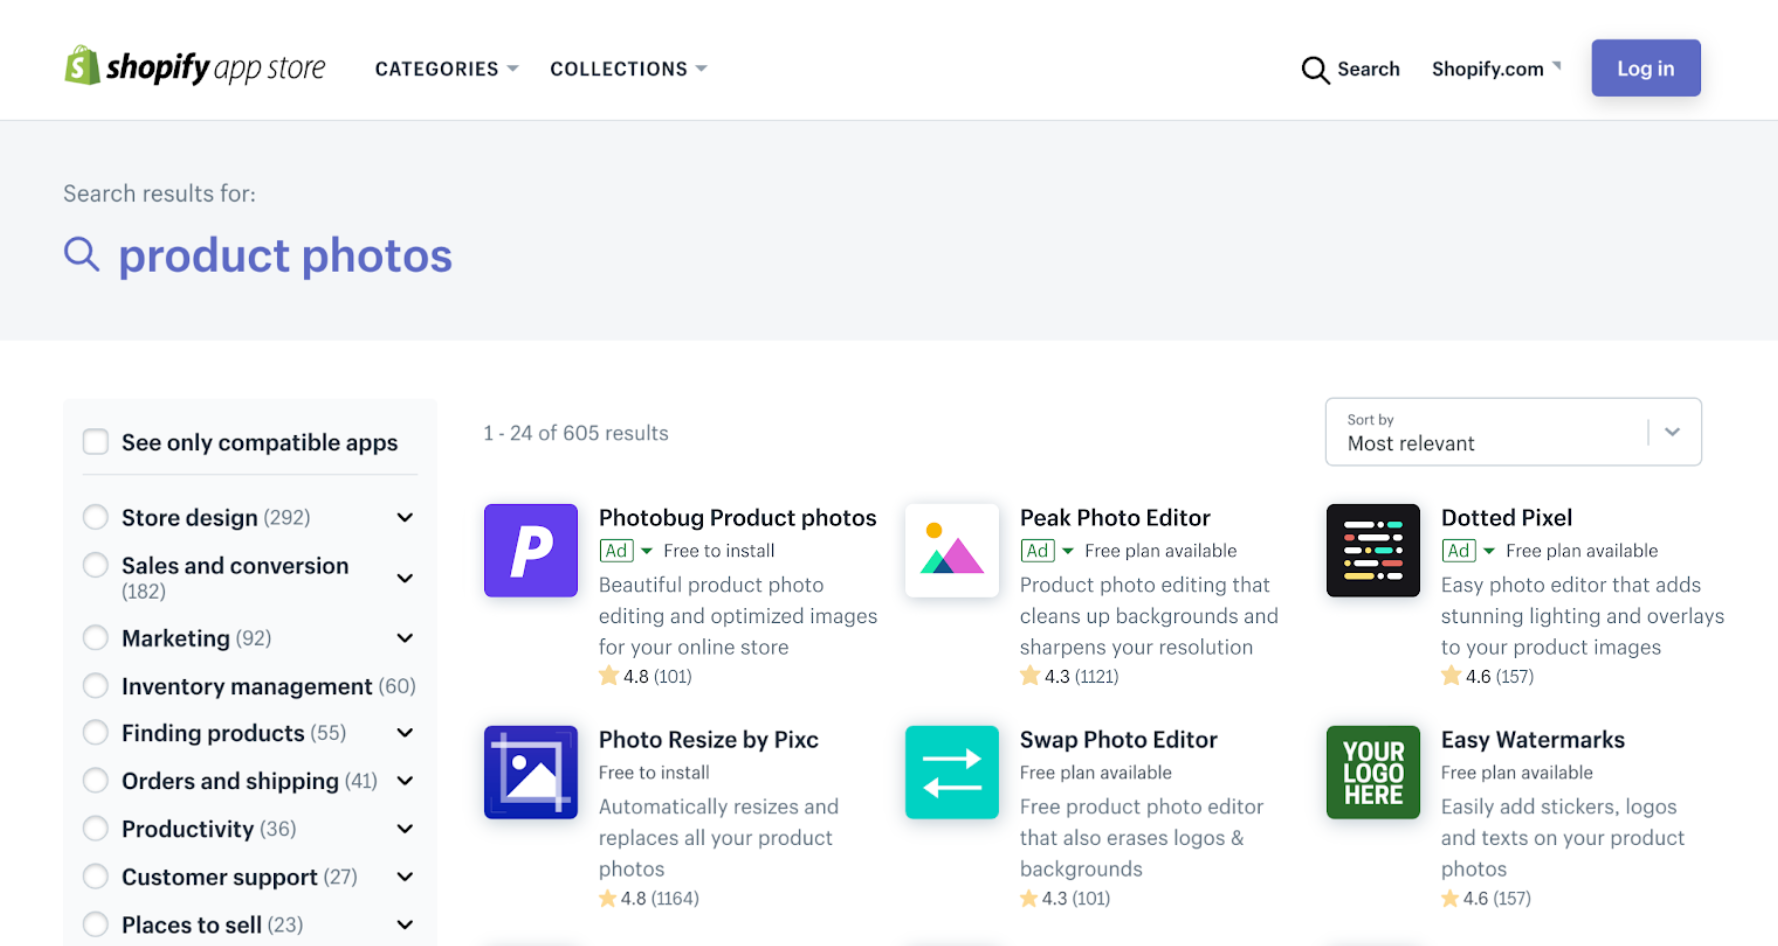 A search results page that shows ads in the Shopify App Store